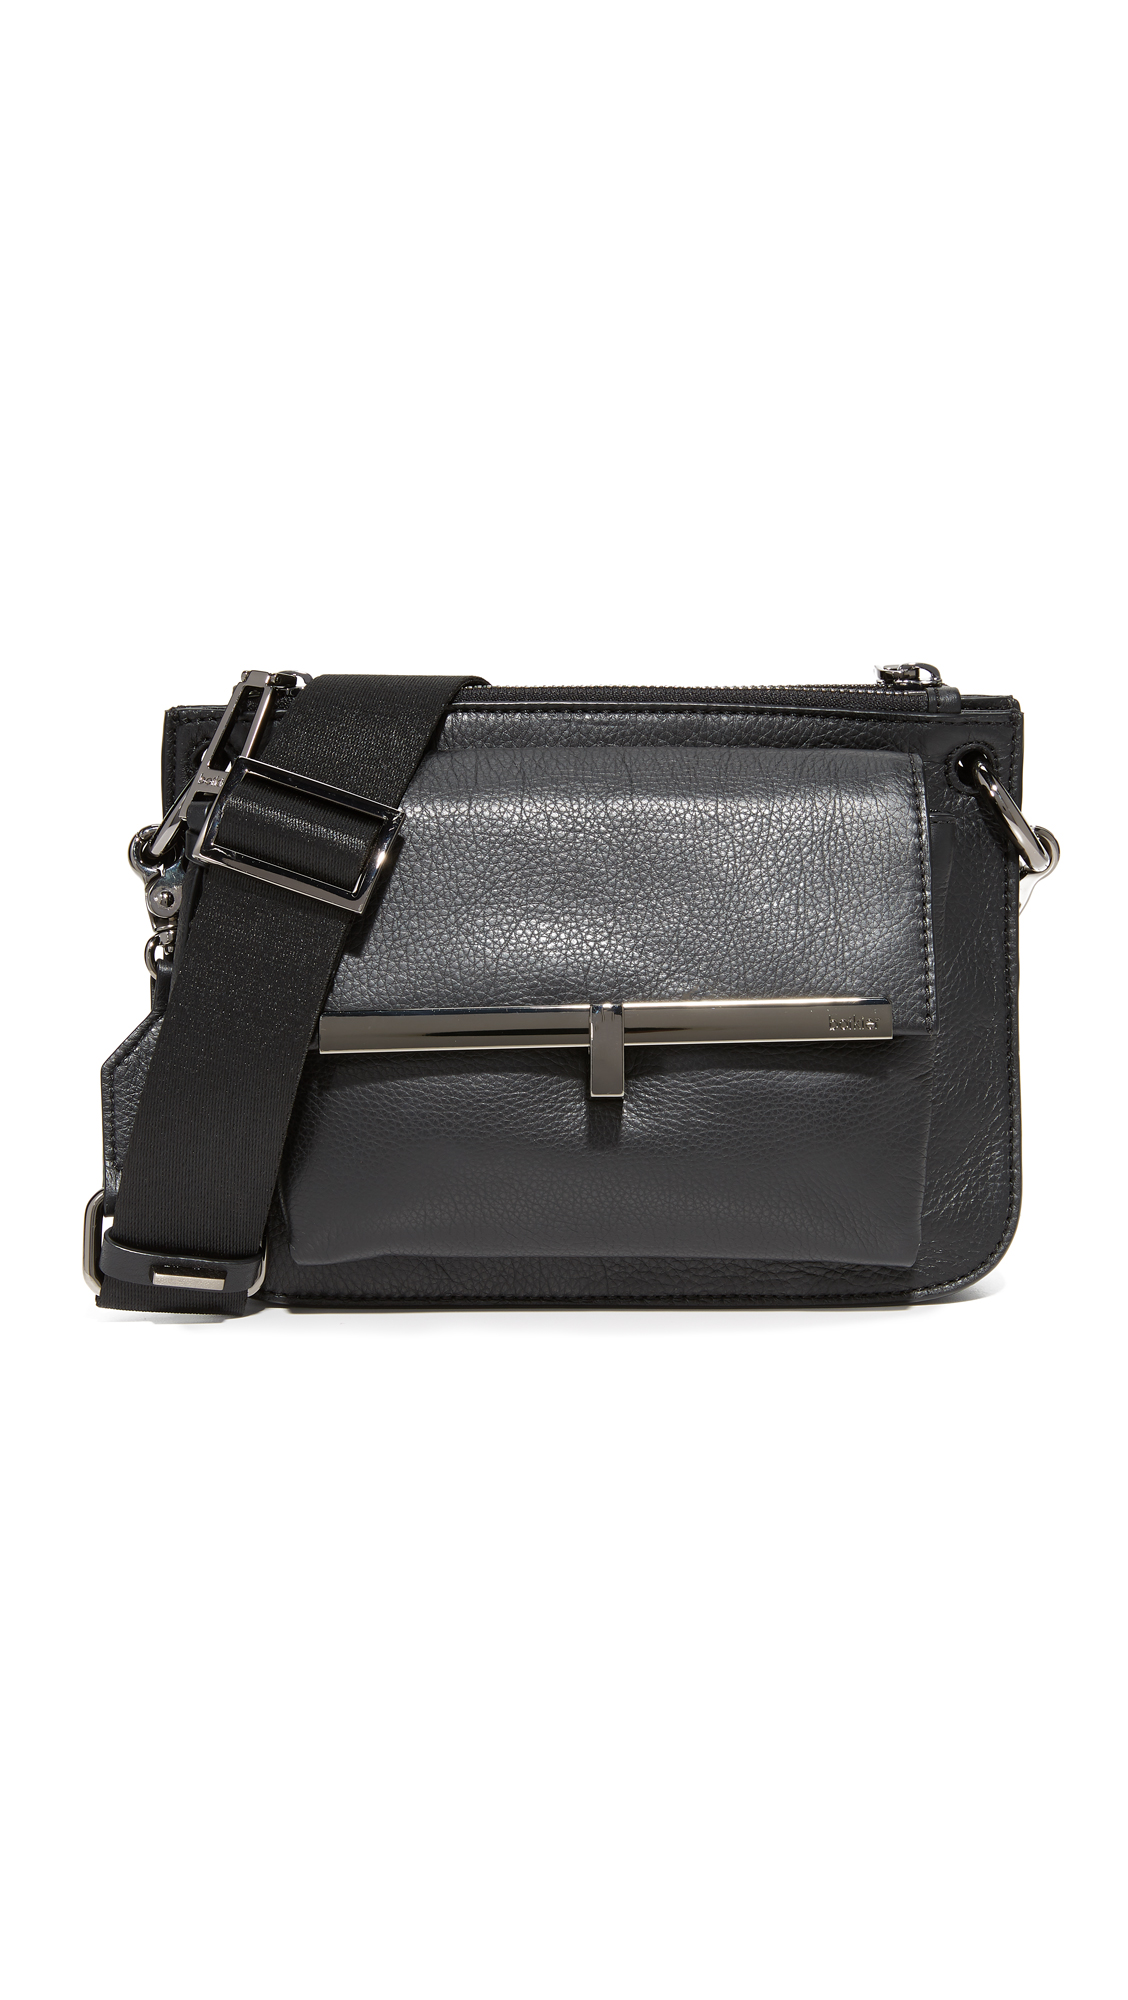 Botkier Bleeker Double Cross Body Bag - Black